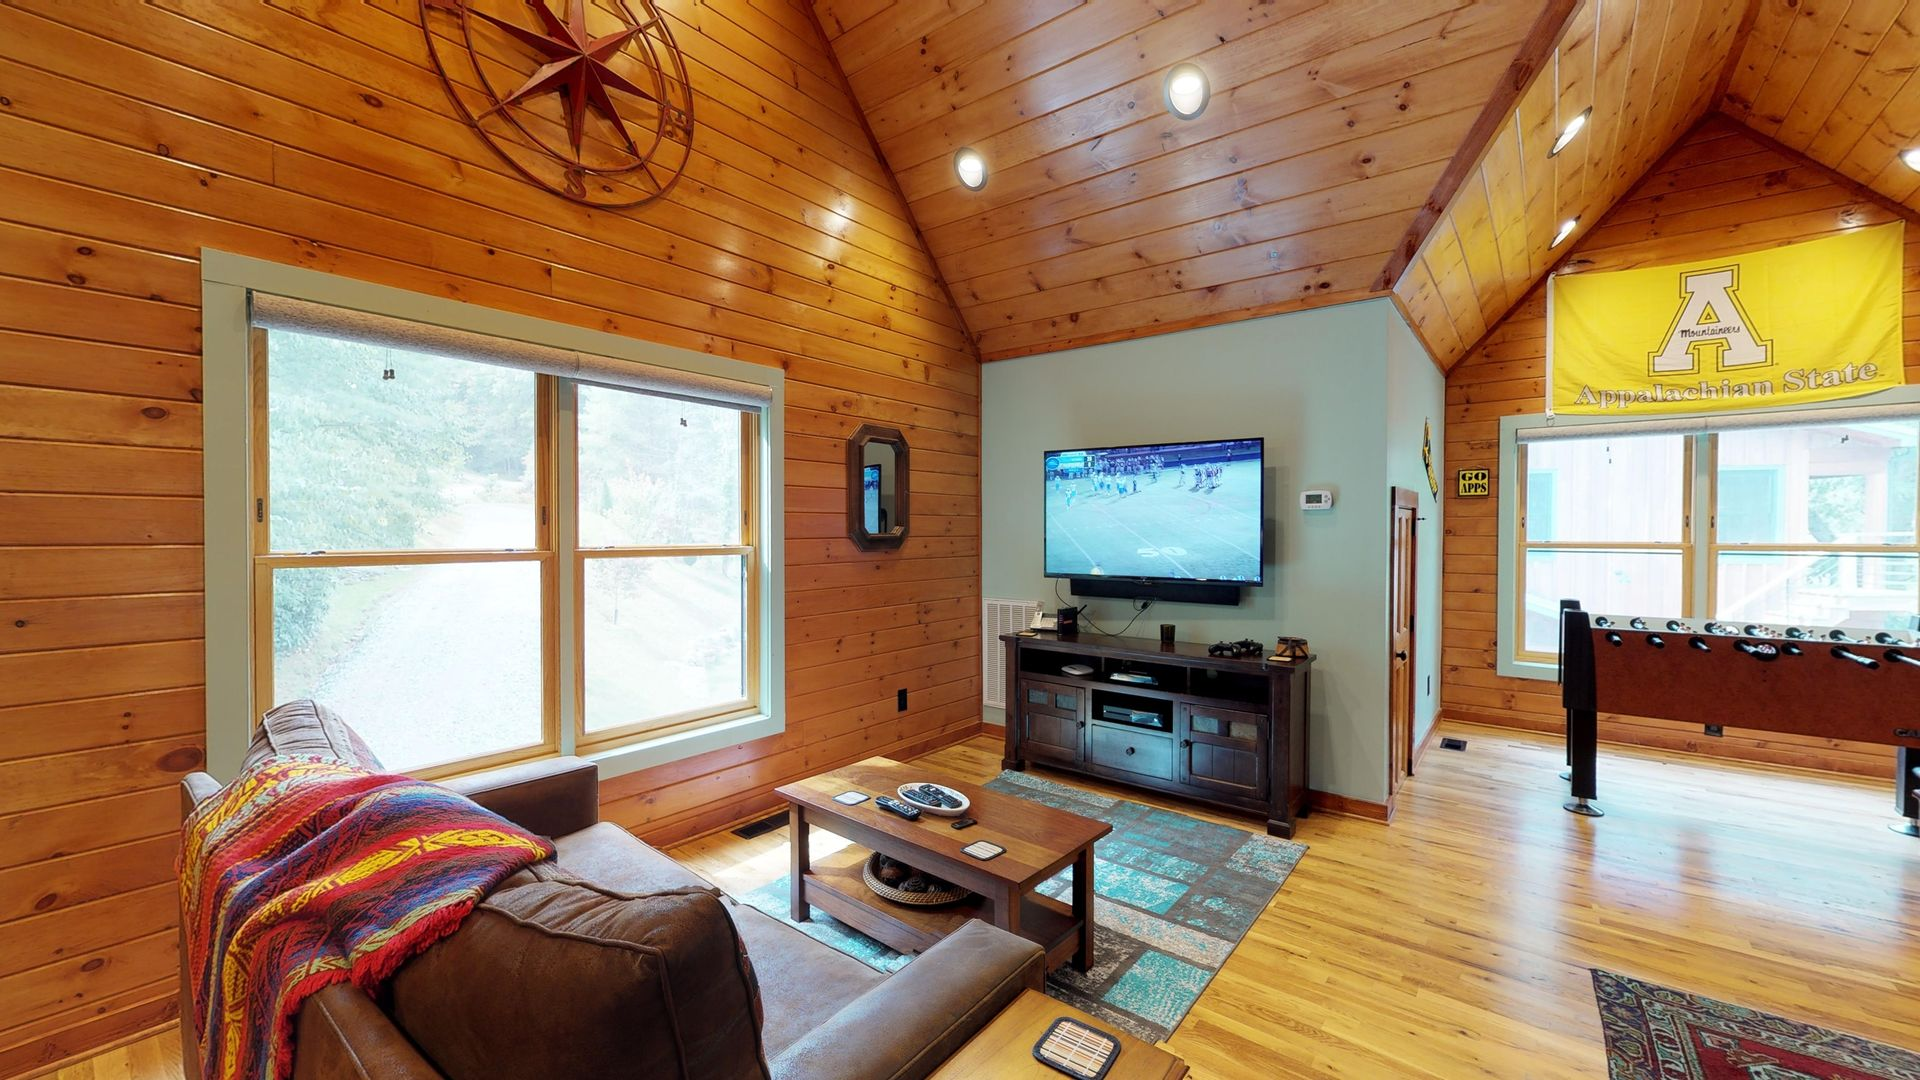 Game/sitting room above the garage